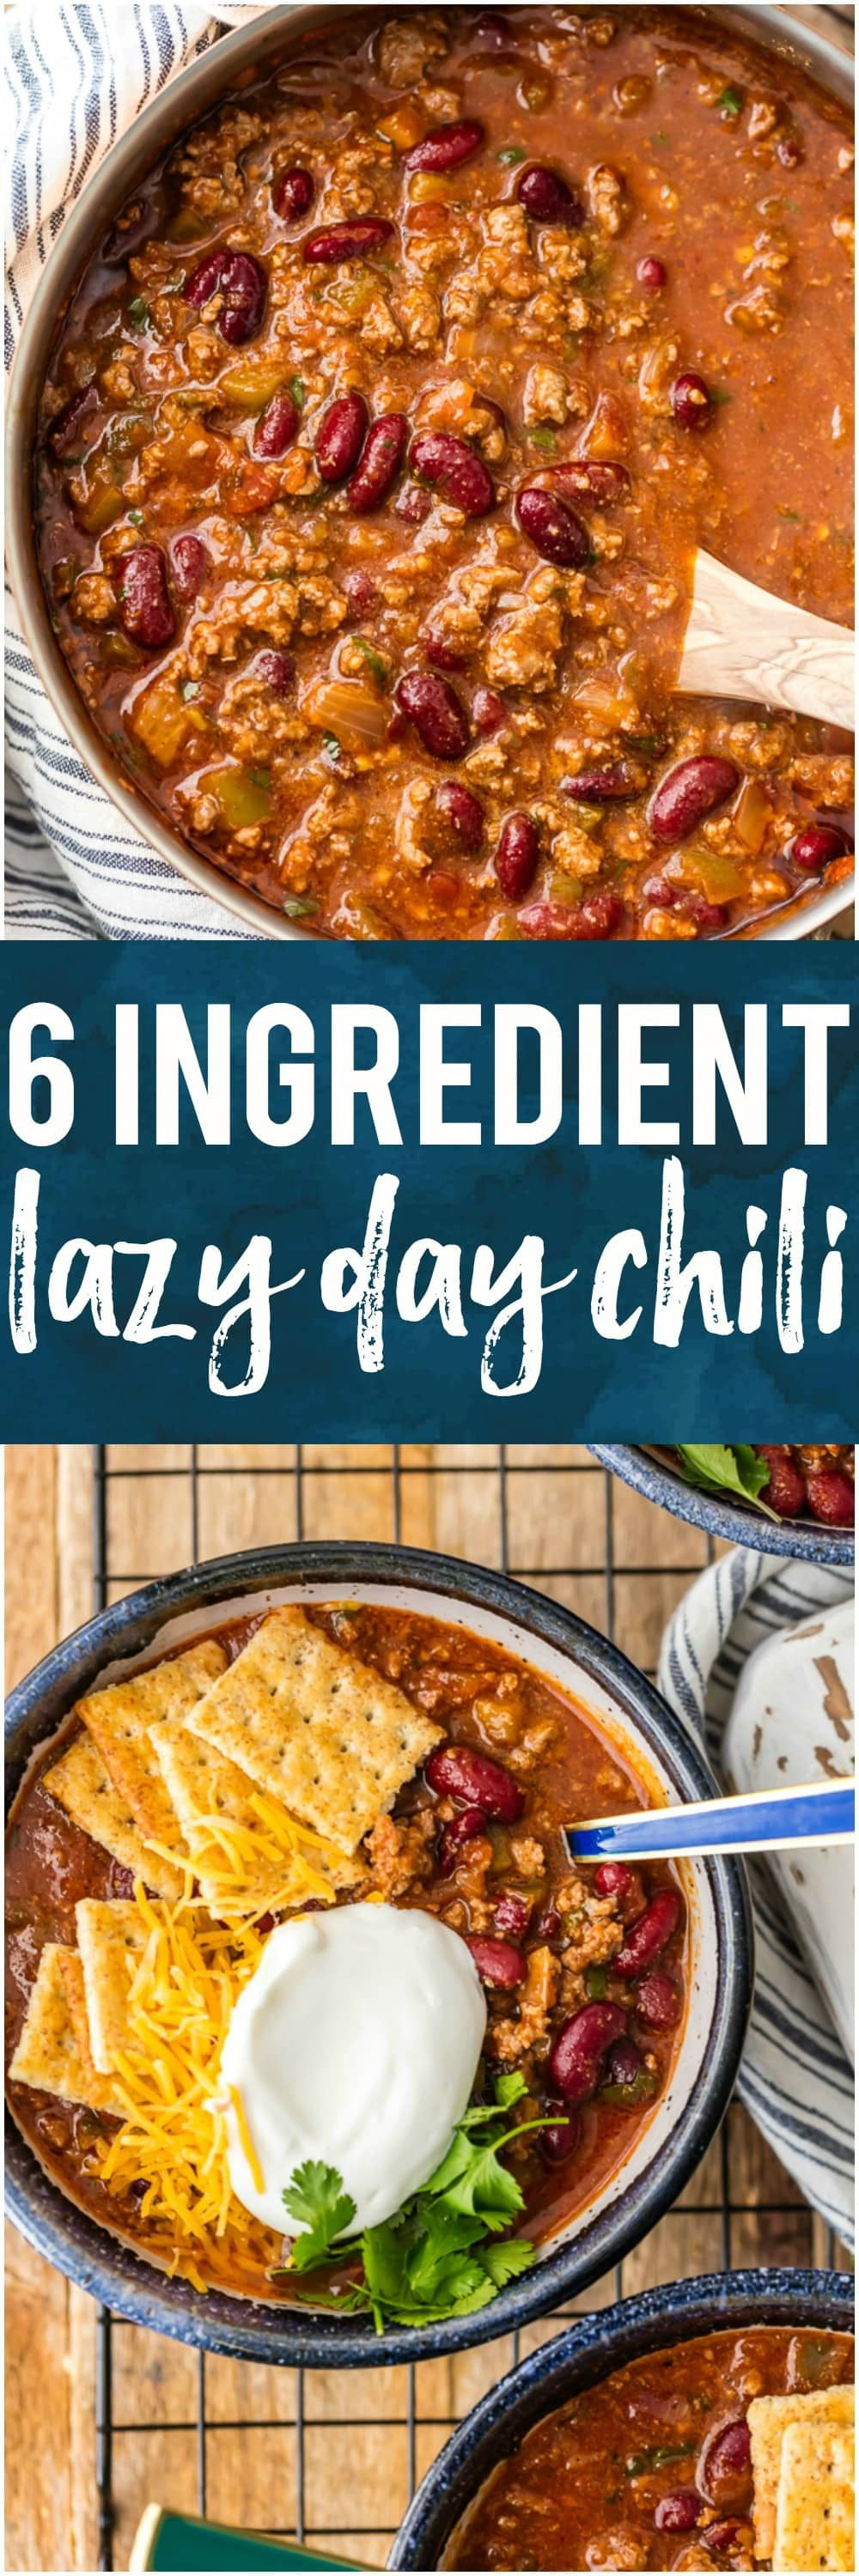 This 6 ingredient lazy day chili is one of our favorite recipes to lazy day chili is one of our favorite recipes to make for a crowd its easy so flavorful and made with ingredients you most likely already have in forumfinder Images